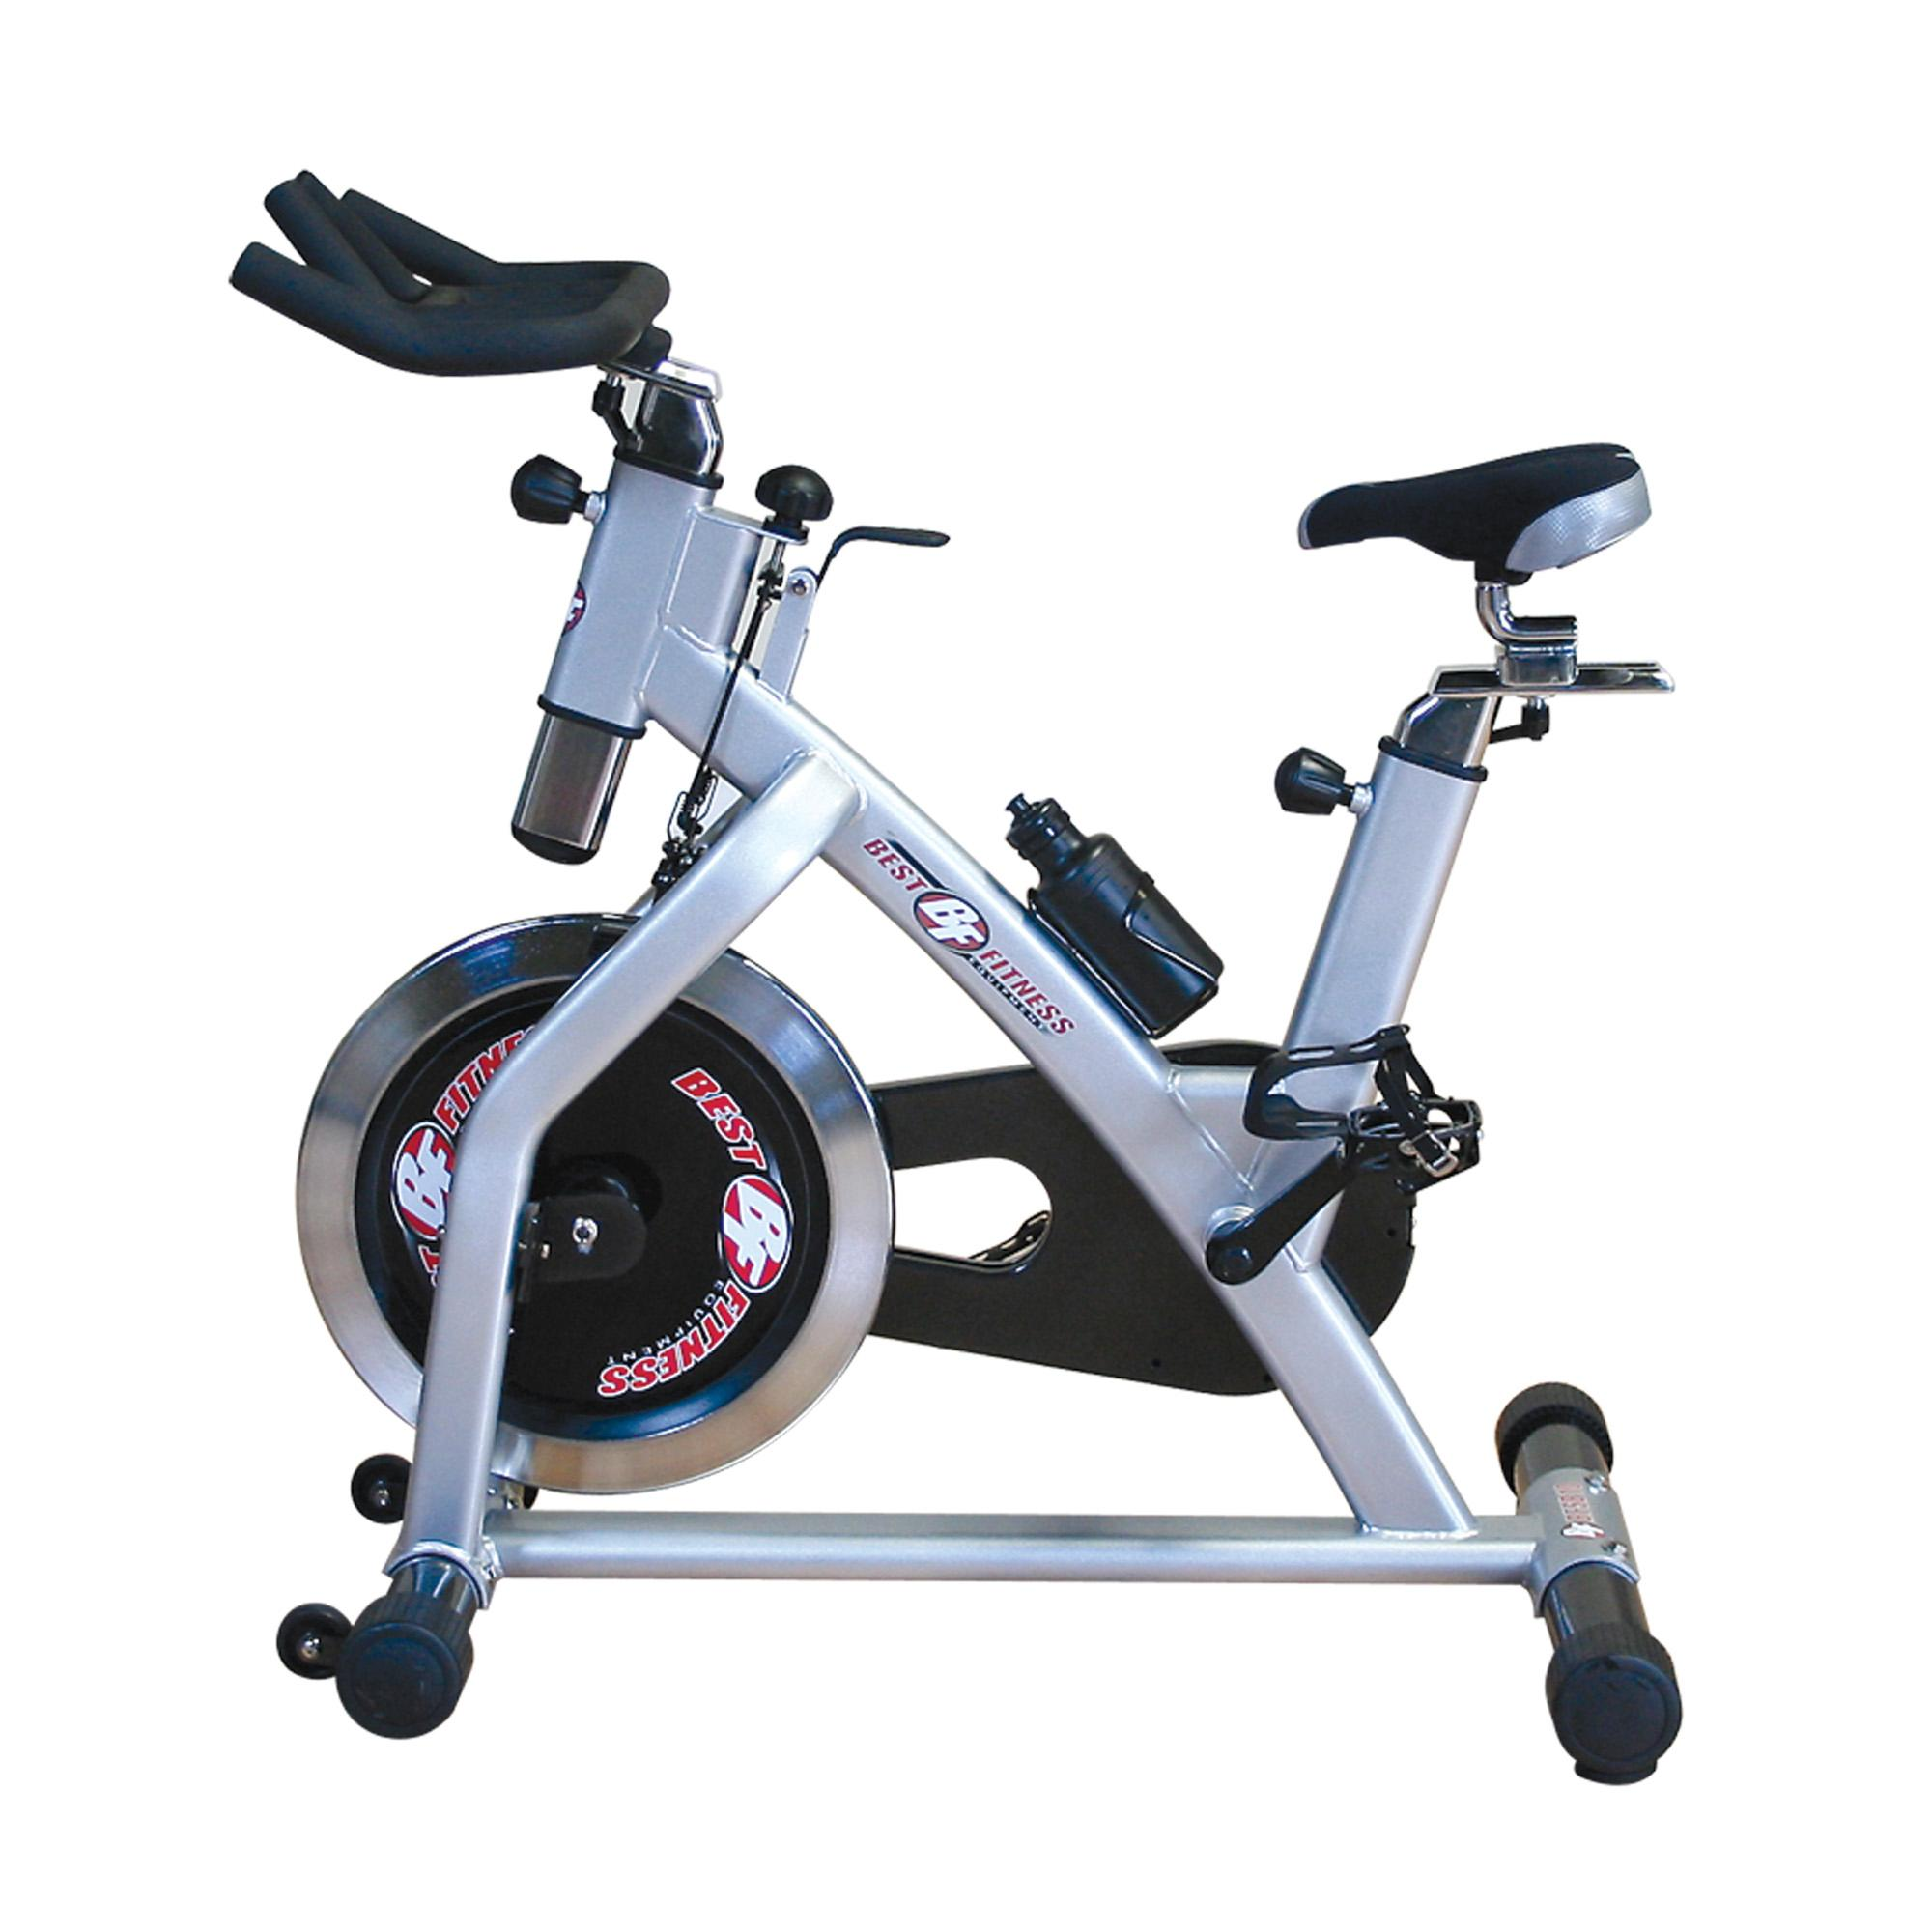 Top Exercise Equipment: Amazon.com : Best Fitness BFSB10 Indoor Cycling Trainer